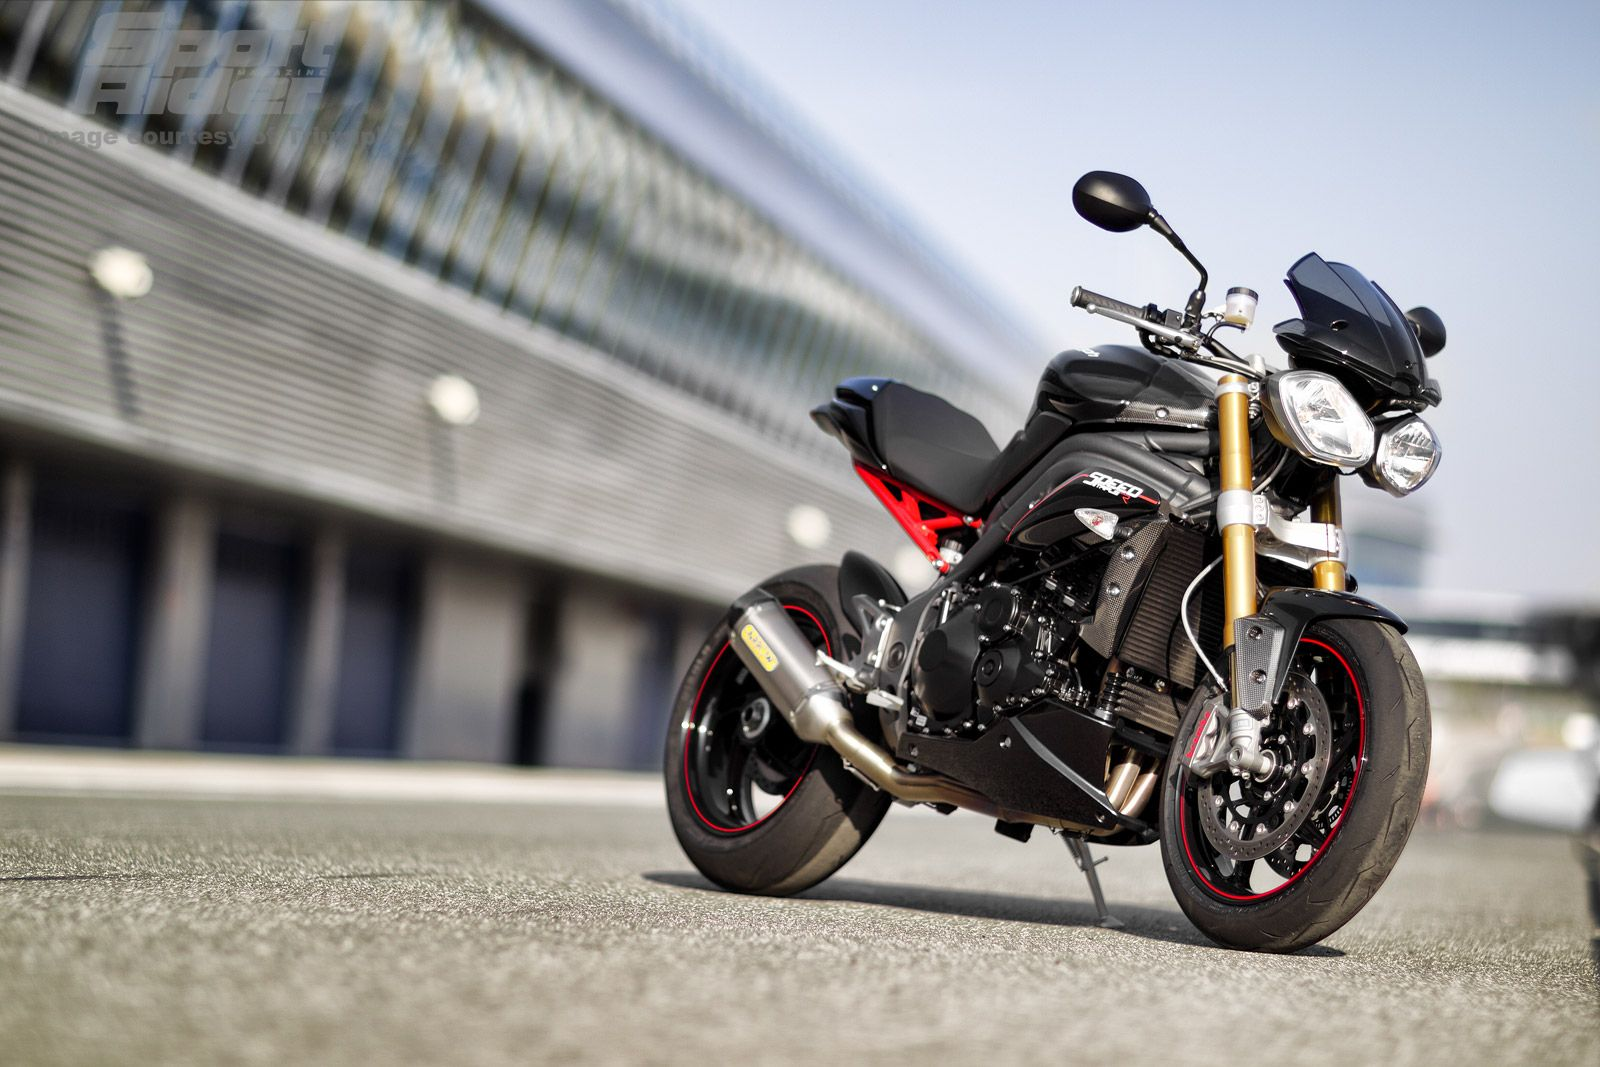 143 1202 triumph speed triple r wallpaper image 08 | triumph speed